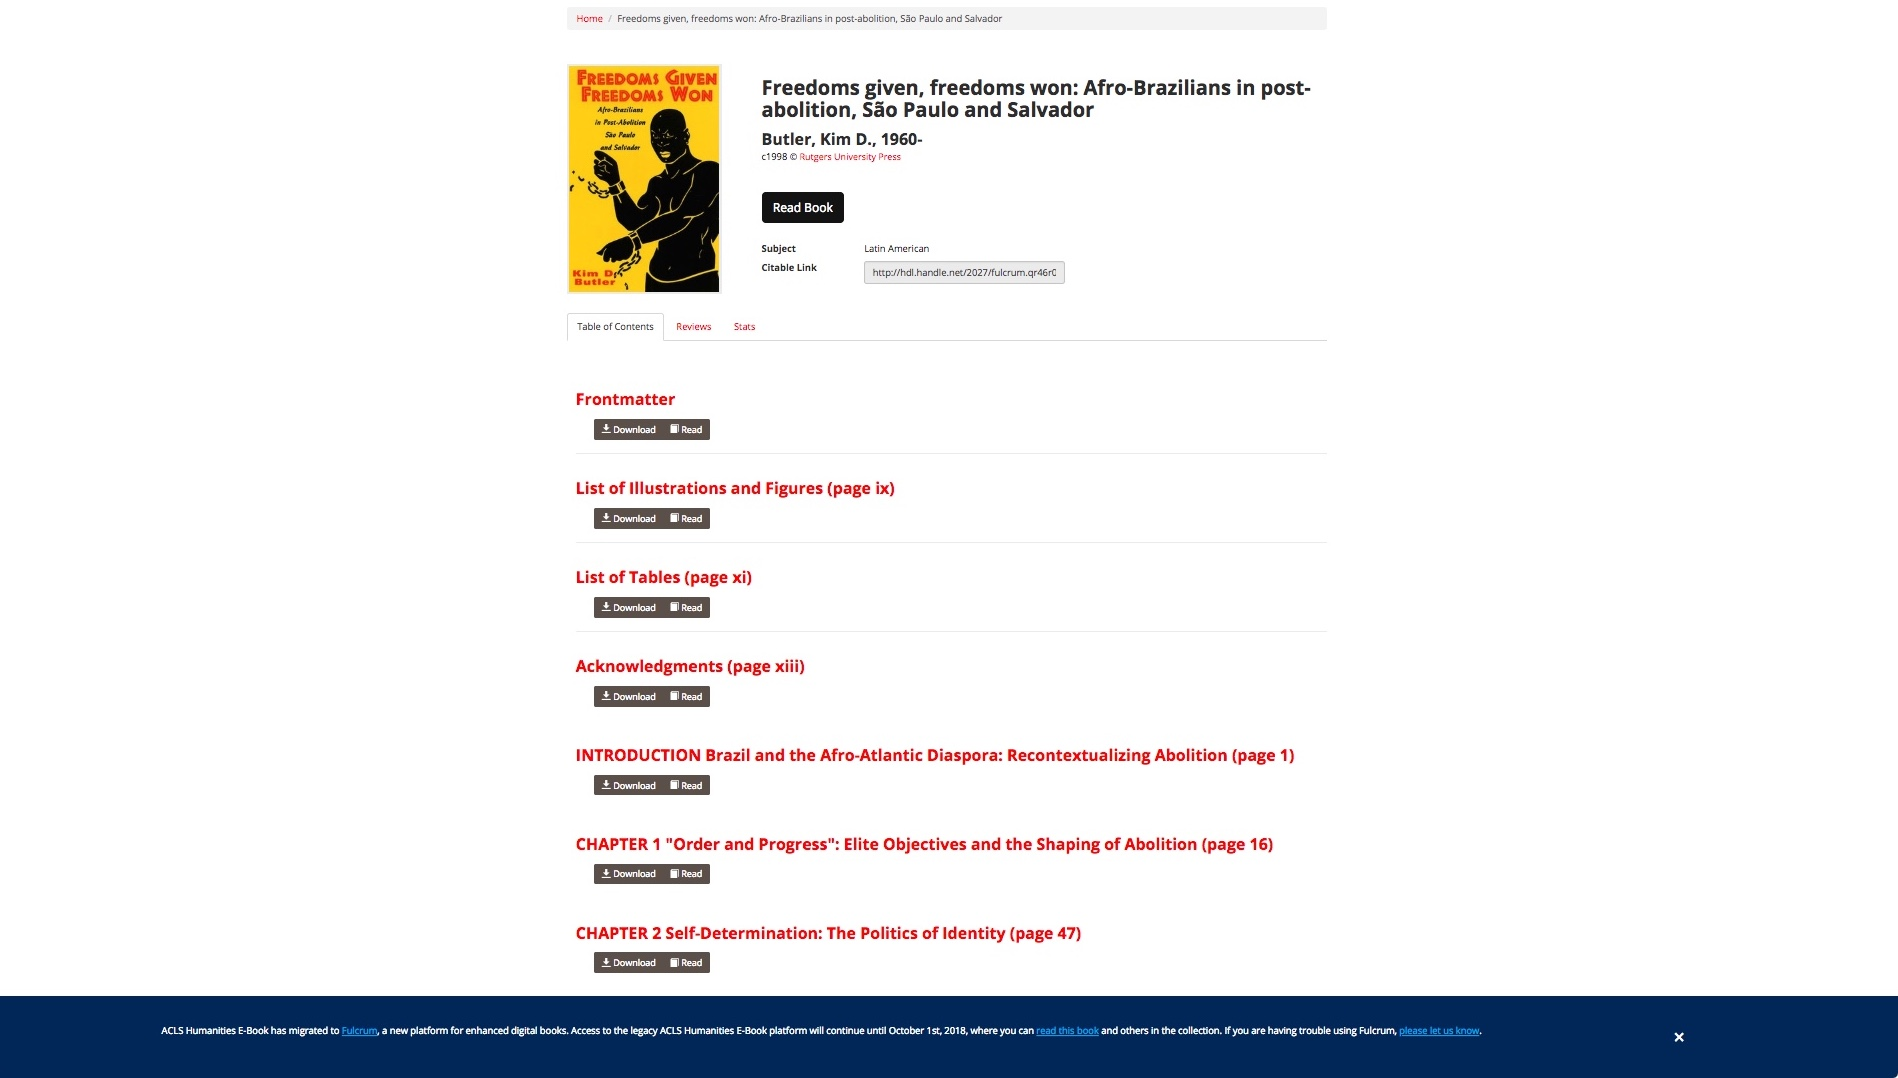 A screenshot of the enhanced e-book landing page displaying book metadata, links to chapters, and chapter download buttons.